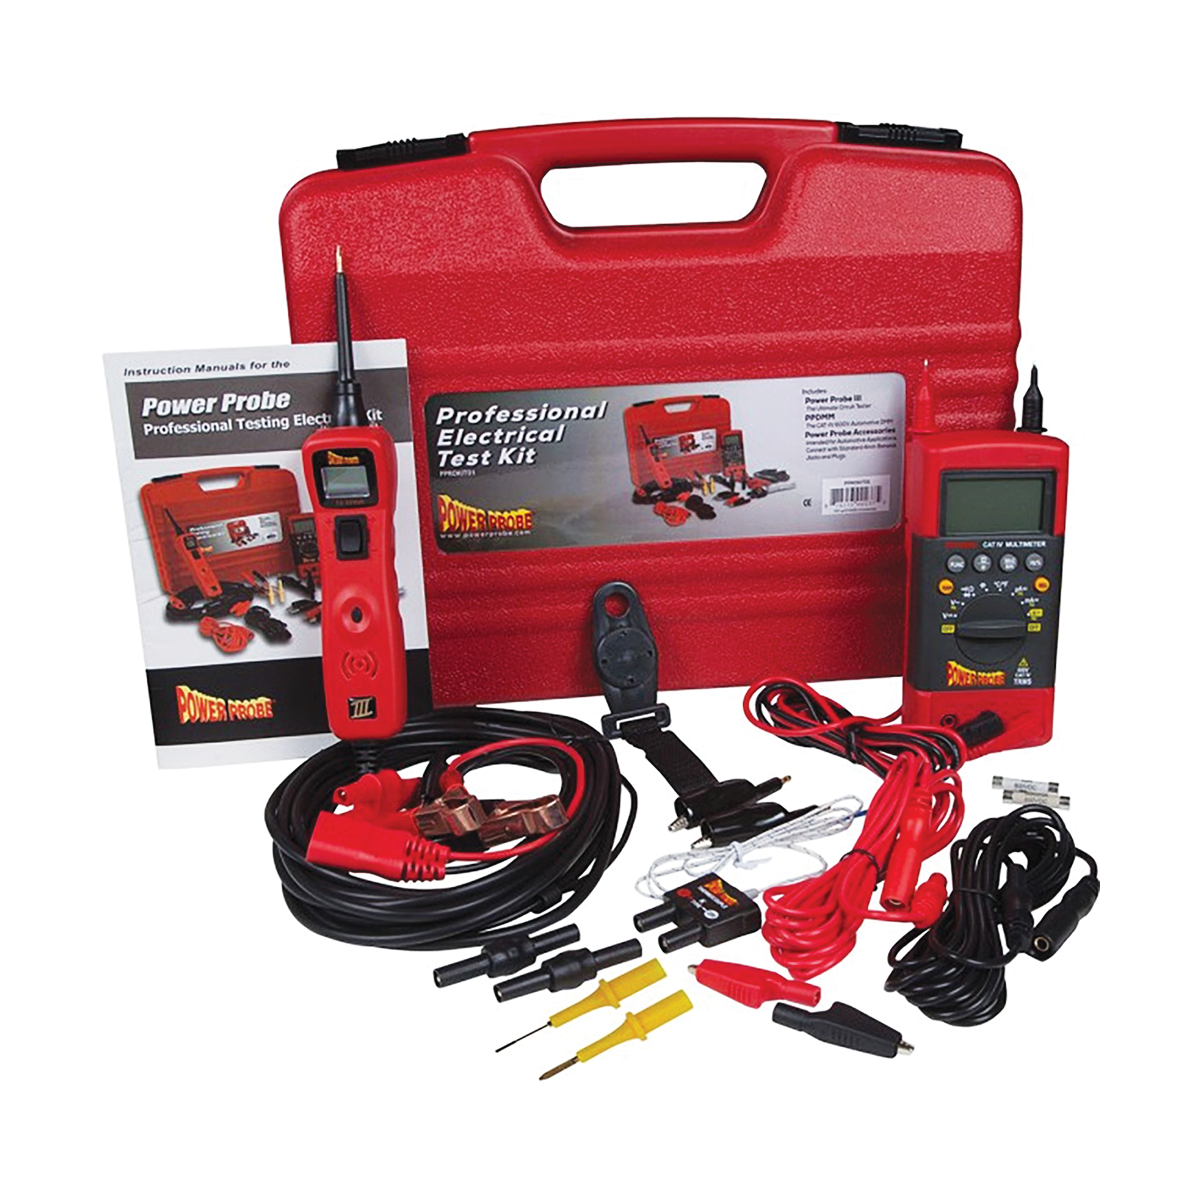 Power Probe Professional Testing Electrical Kit